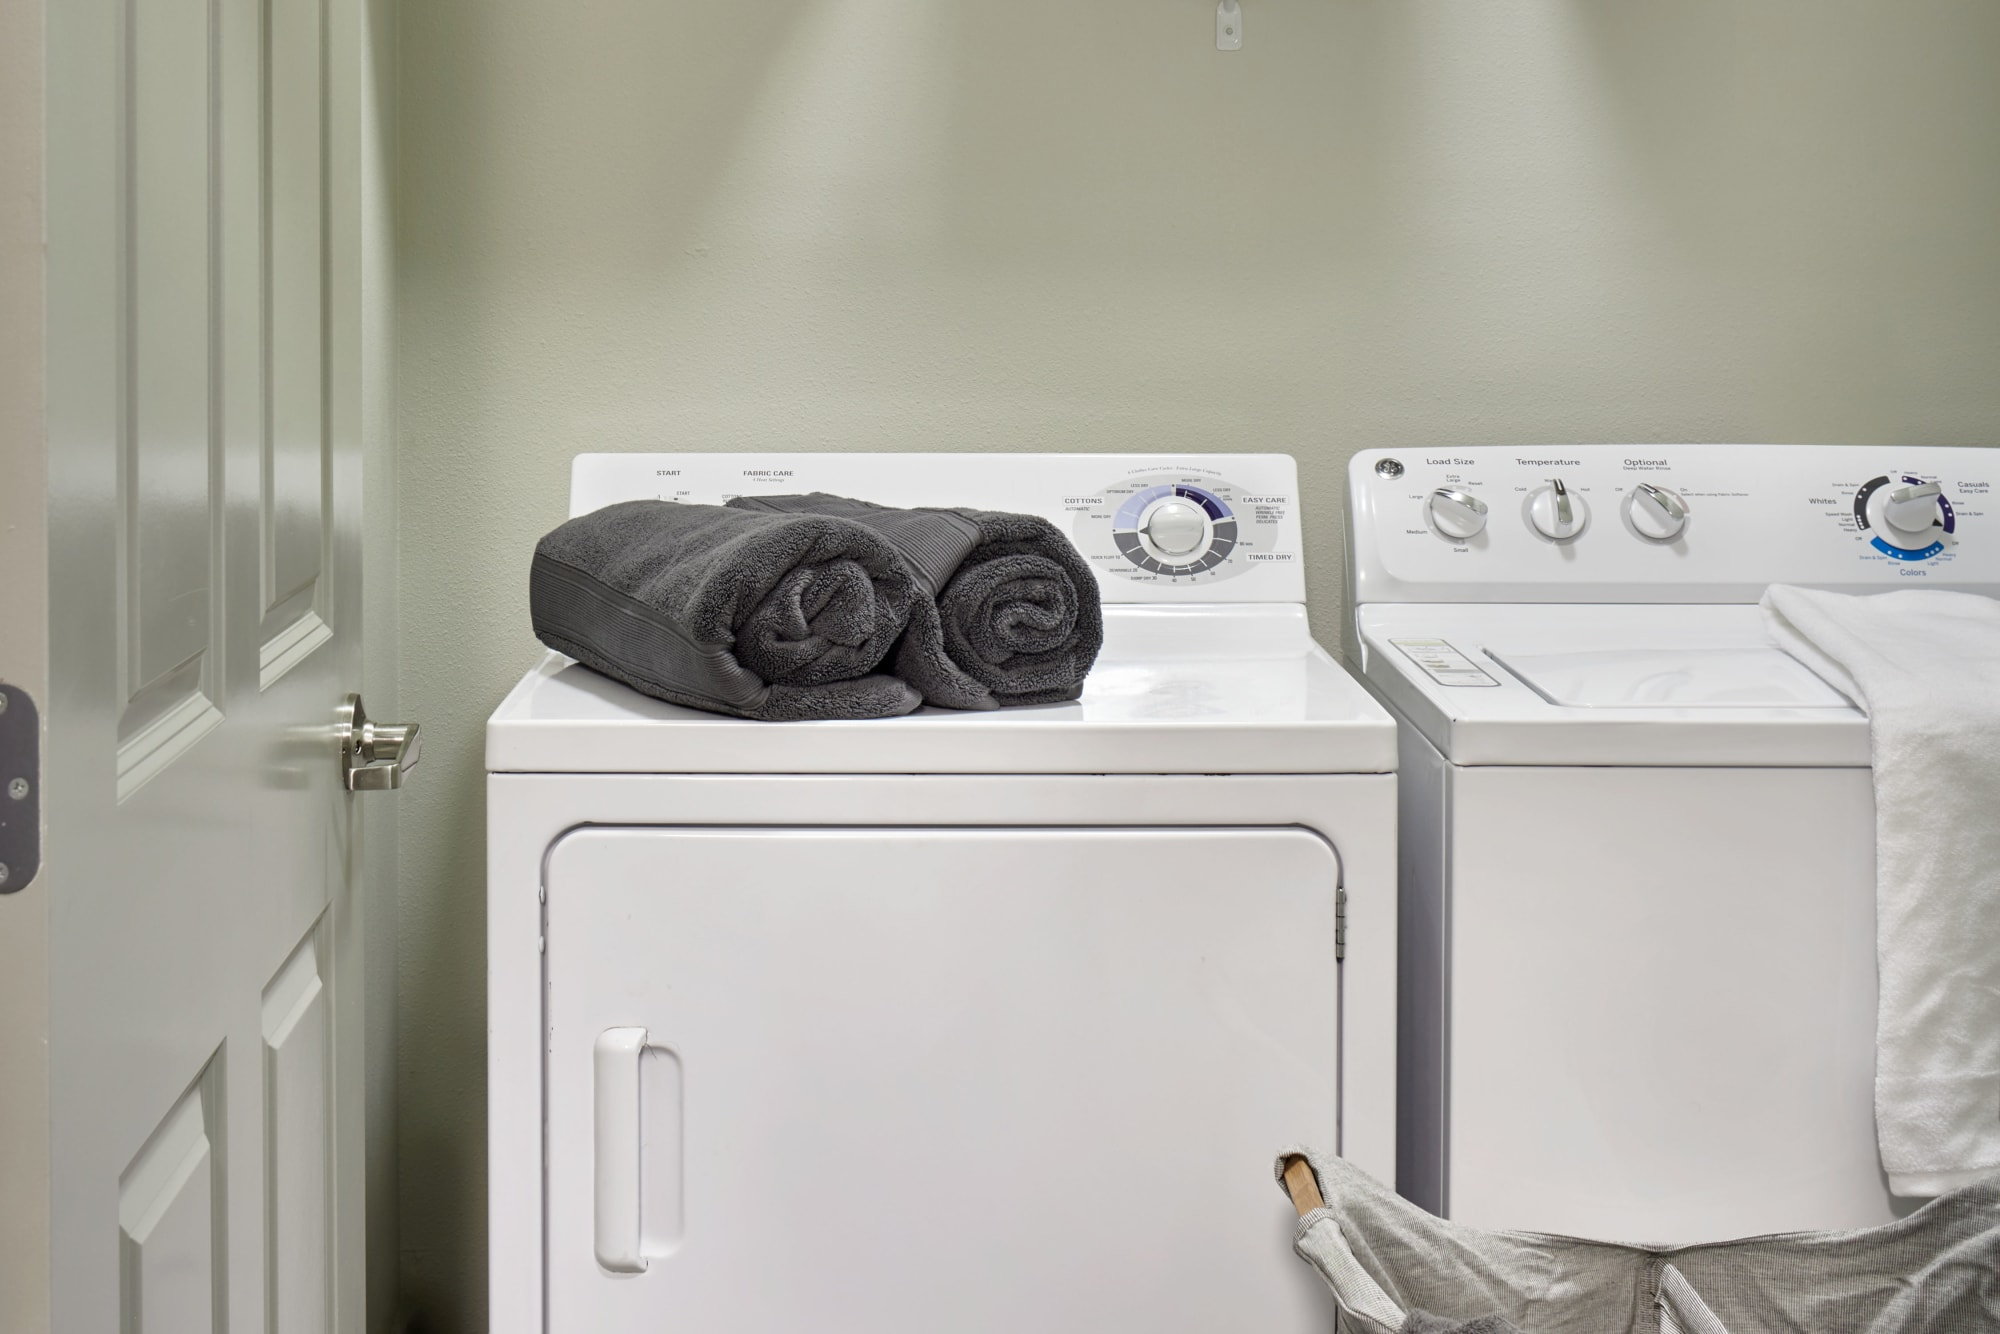 A washer and dryer combo at Brookside Village in Auburn, Washington